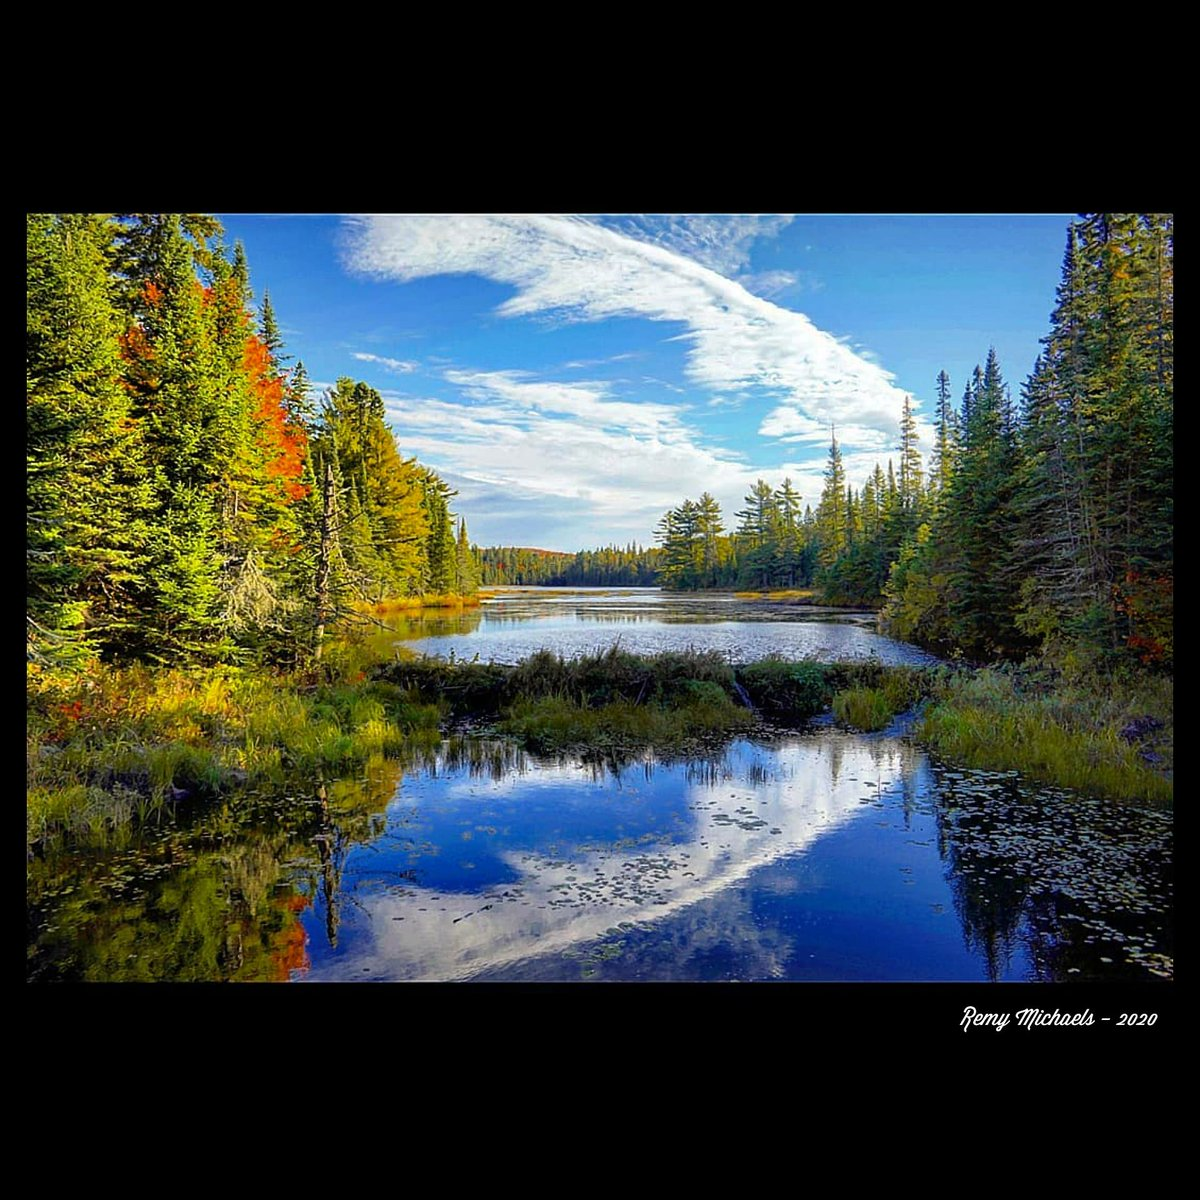 """NORTHERN REFLECTIONS"" https://t.co/mcaYNvkc1A #CanadianGeographic #NationalGeographic #AlgonquinPark #Wilderness #MarchHareLake #Wildlife #OntarioParks #PicOfTheDay #Travel #Nature #Muskoka #Huntsville #Gravenhurst #Photography #Art #Zen #Earth 🌎☀️😎🙏✌️👍🌲🌲🍁📸🐾🐾♥️🏆🇨🇦 https://t.co/BmqL2YKLHZ"